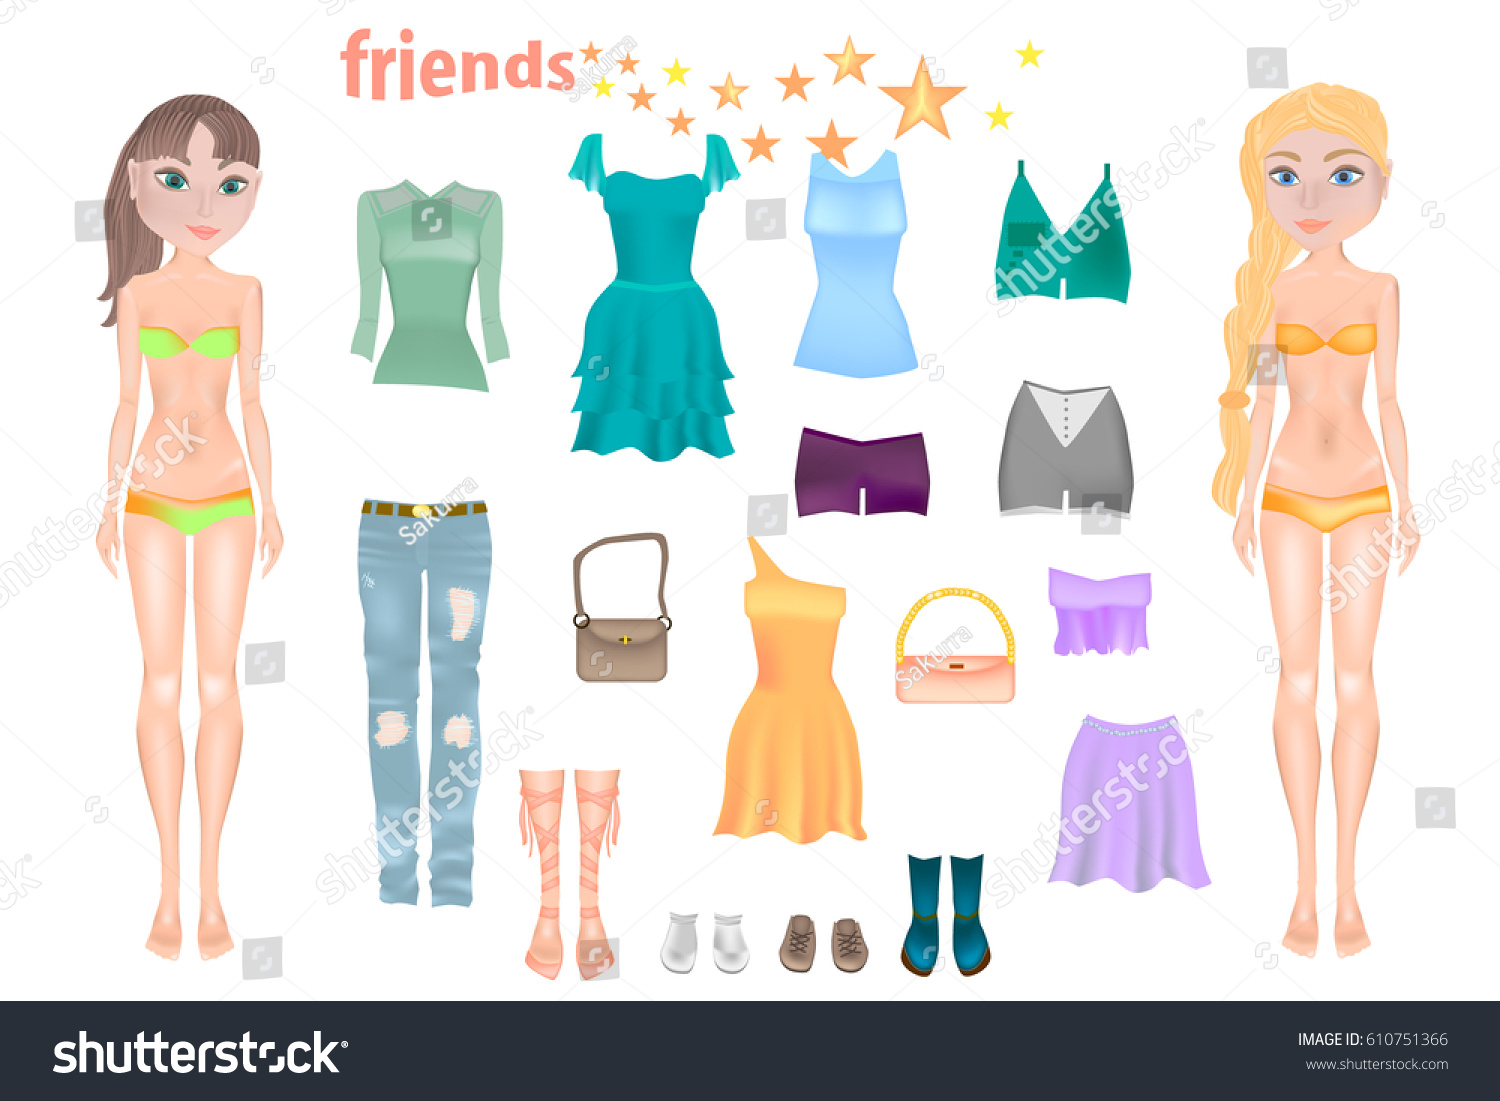 Paper Dolls Friends Body Templates Dress Stock Vector 610751366 ...